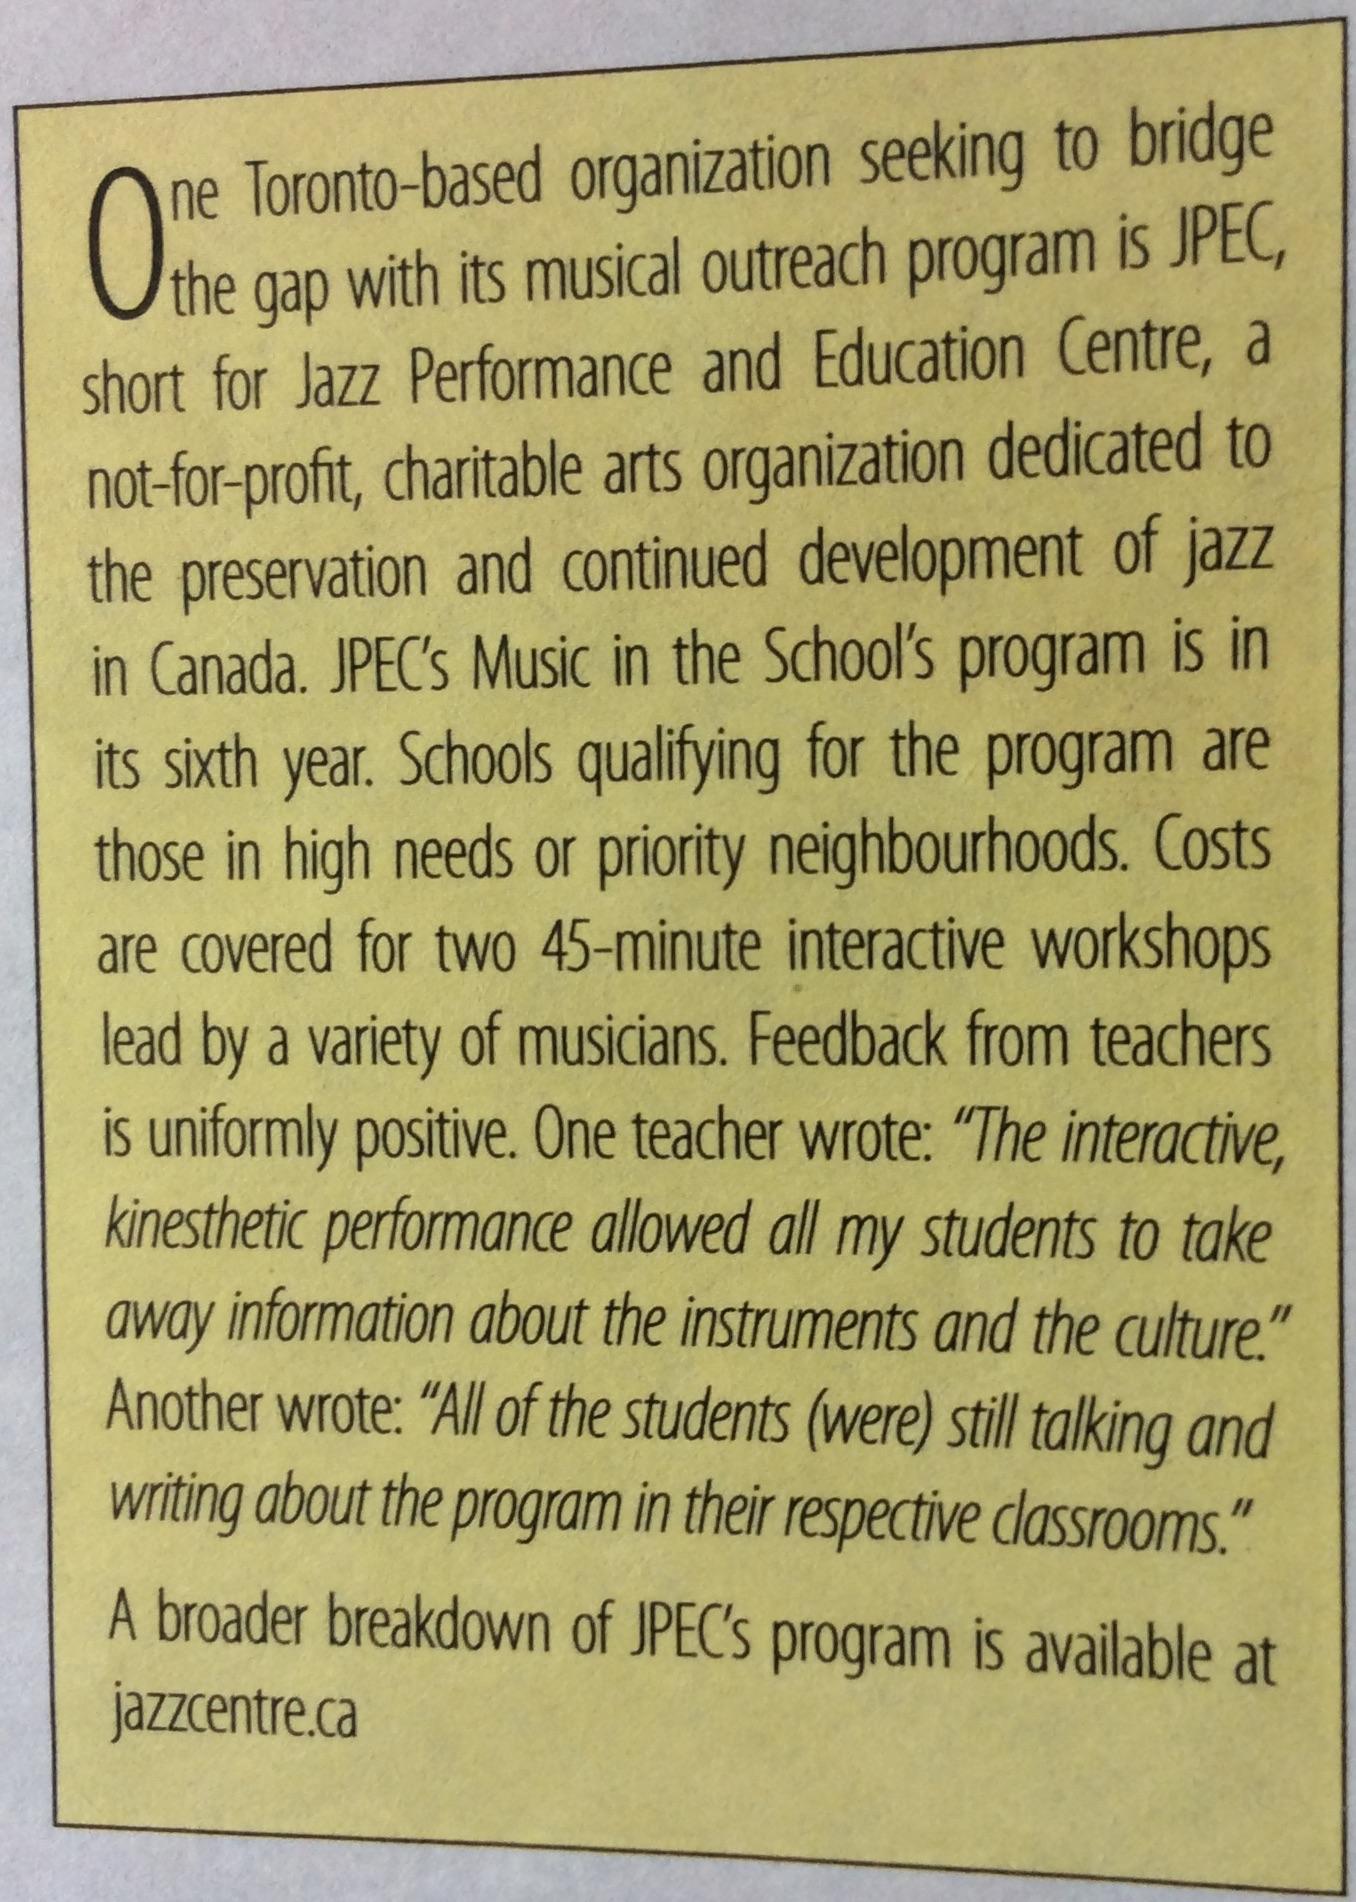 Canadian Teachers Magazine at Jazz Performance and Education Centre in Toronto